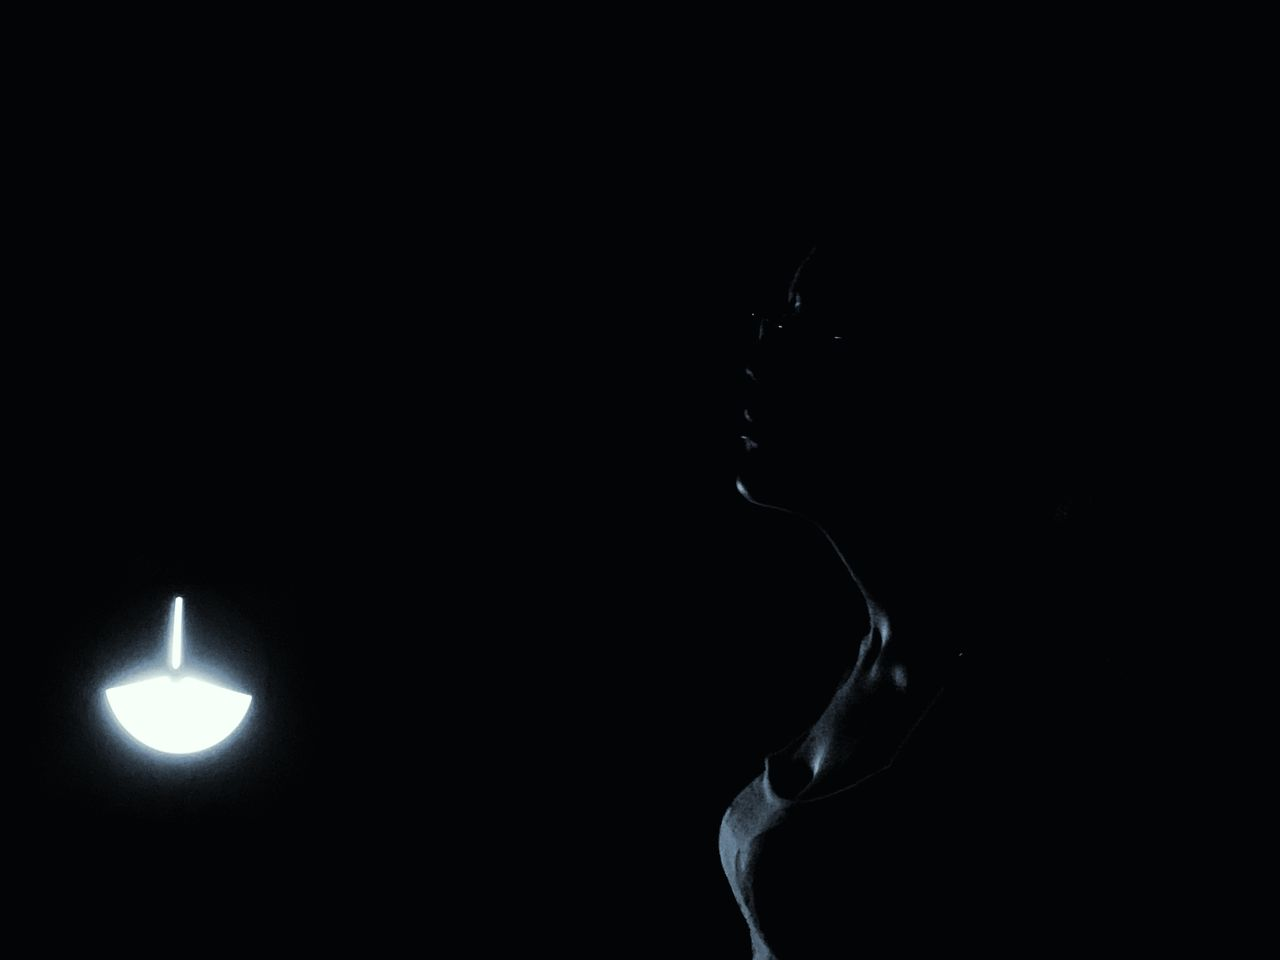 black background, illuminated, studio shot, copy space, dark, indoors, no people, lighting equipment, close-up, night, glowing, nature, silhouette, side view, light - natural phenomenon, black color, light, darkroom, motion, smoke - physical structure, electric lamp, moonlight